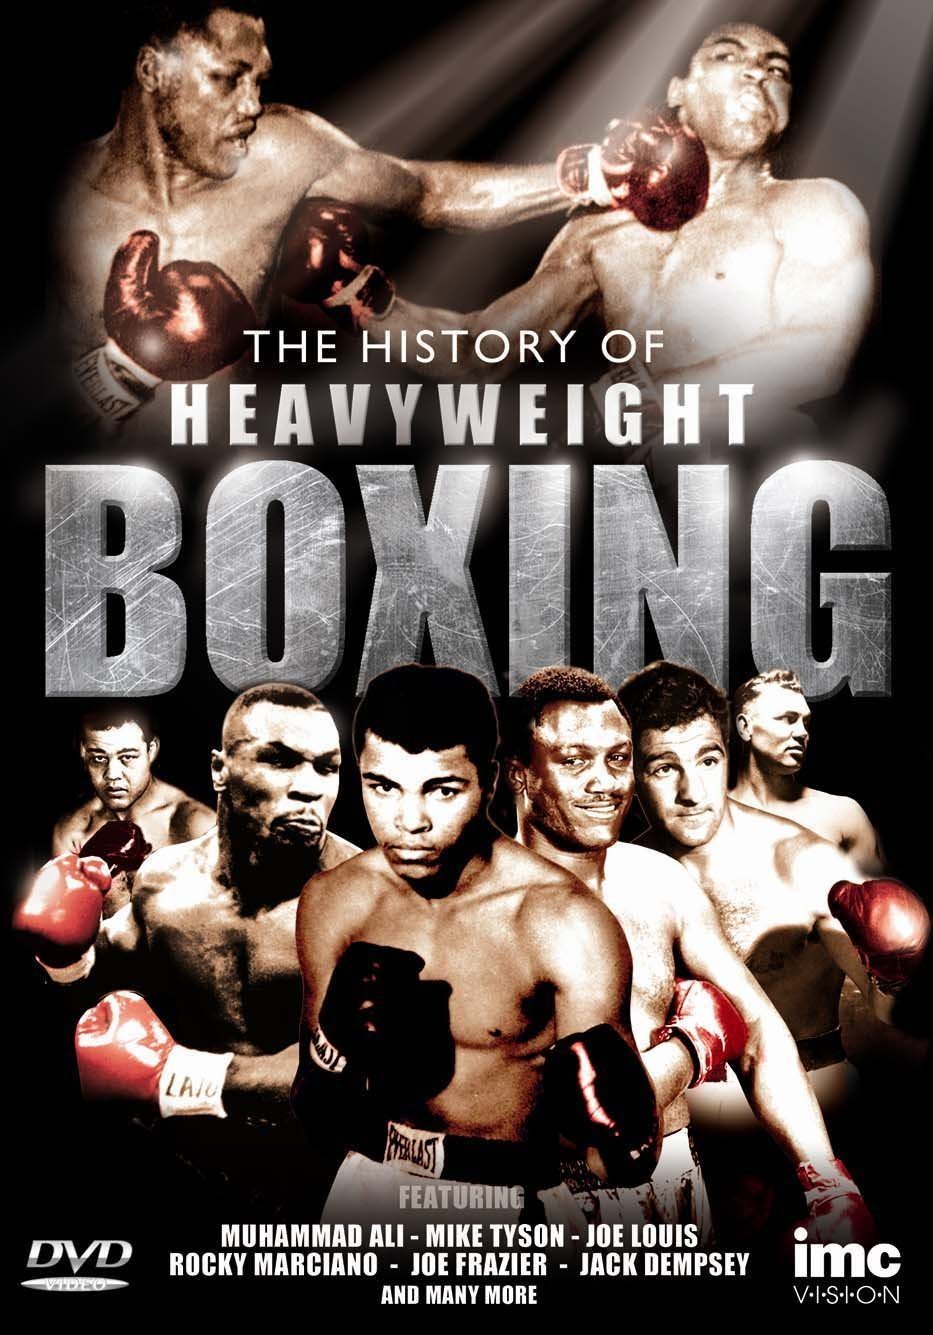 Amazon com: The History of Heavy Weight Boxing Featuring